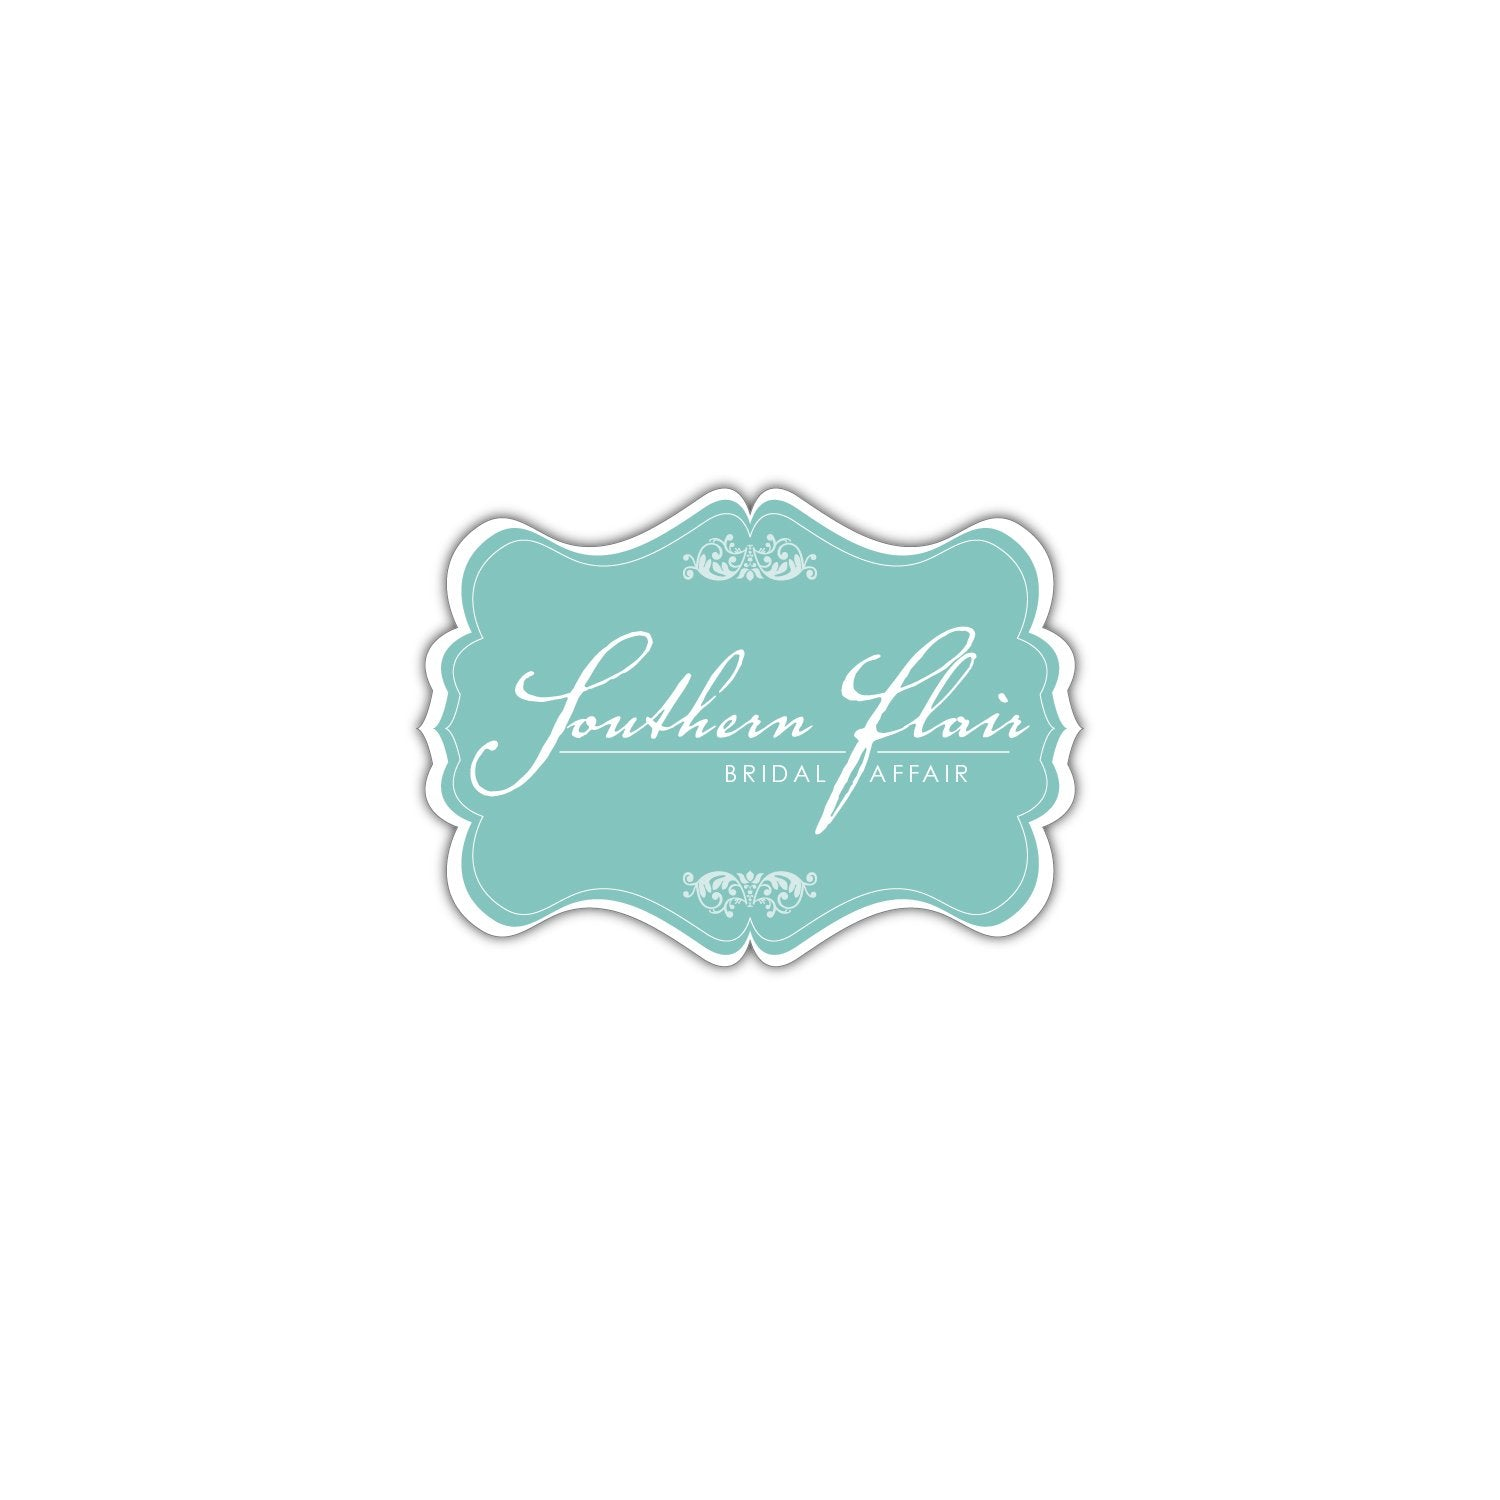 leanne and company southern flair bridal affair logo design charlotte nc